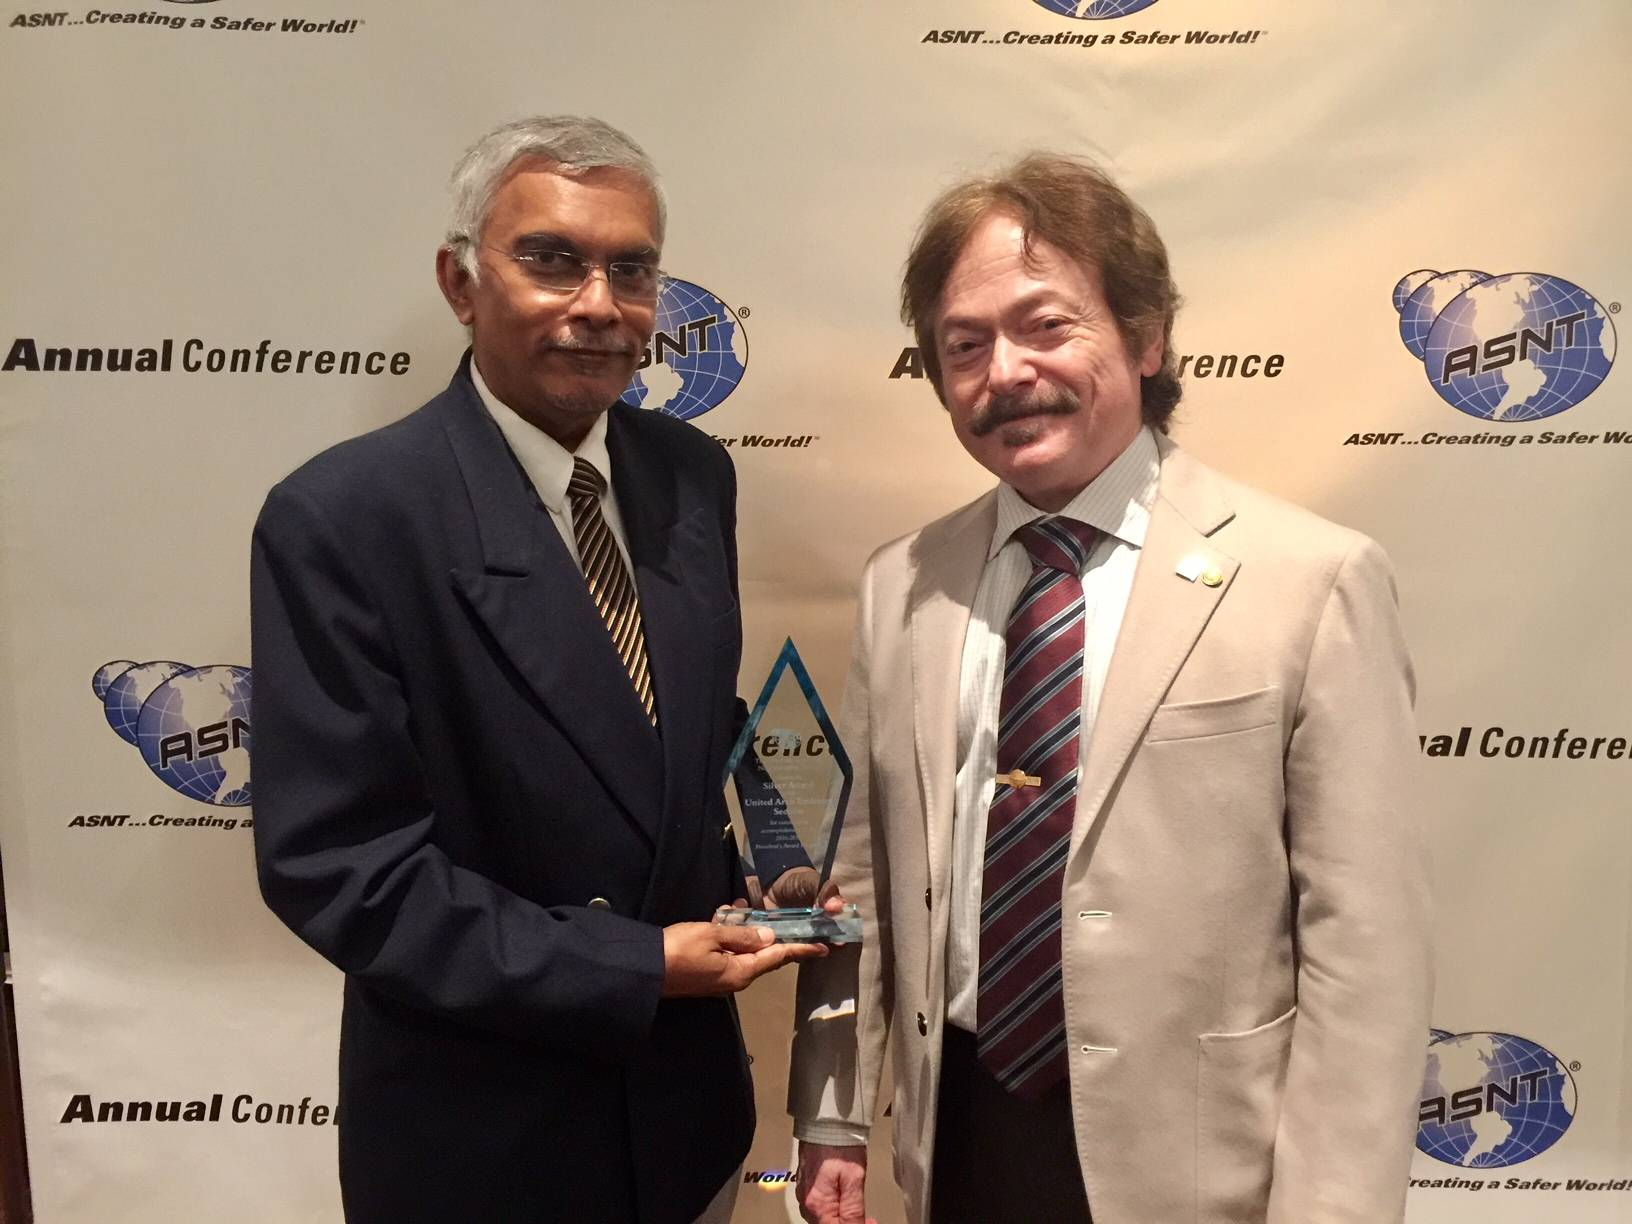 ASNT UAE Section wins its 1st President's Award